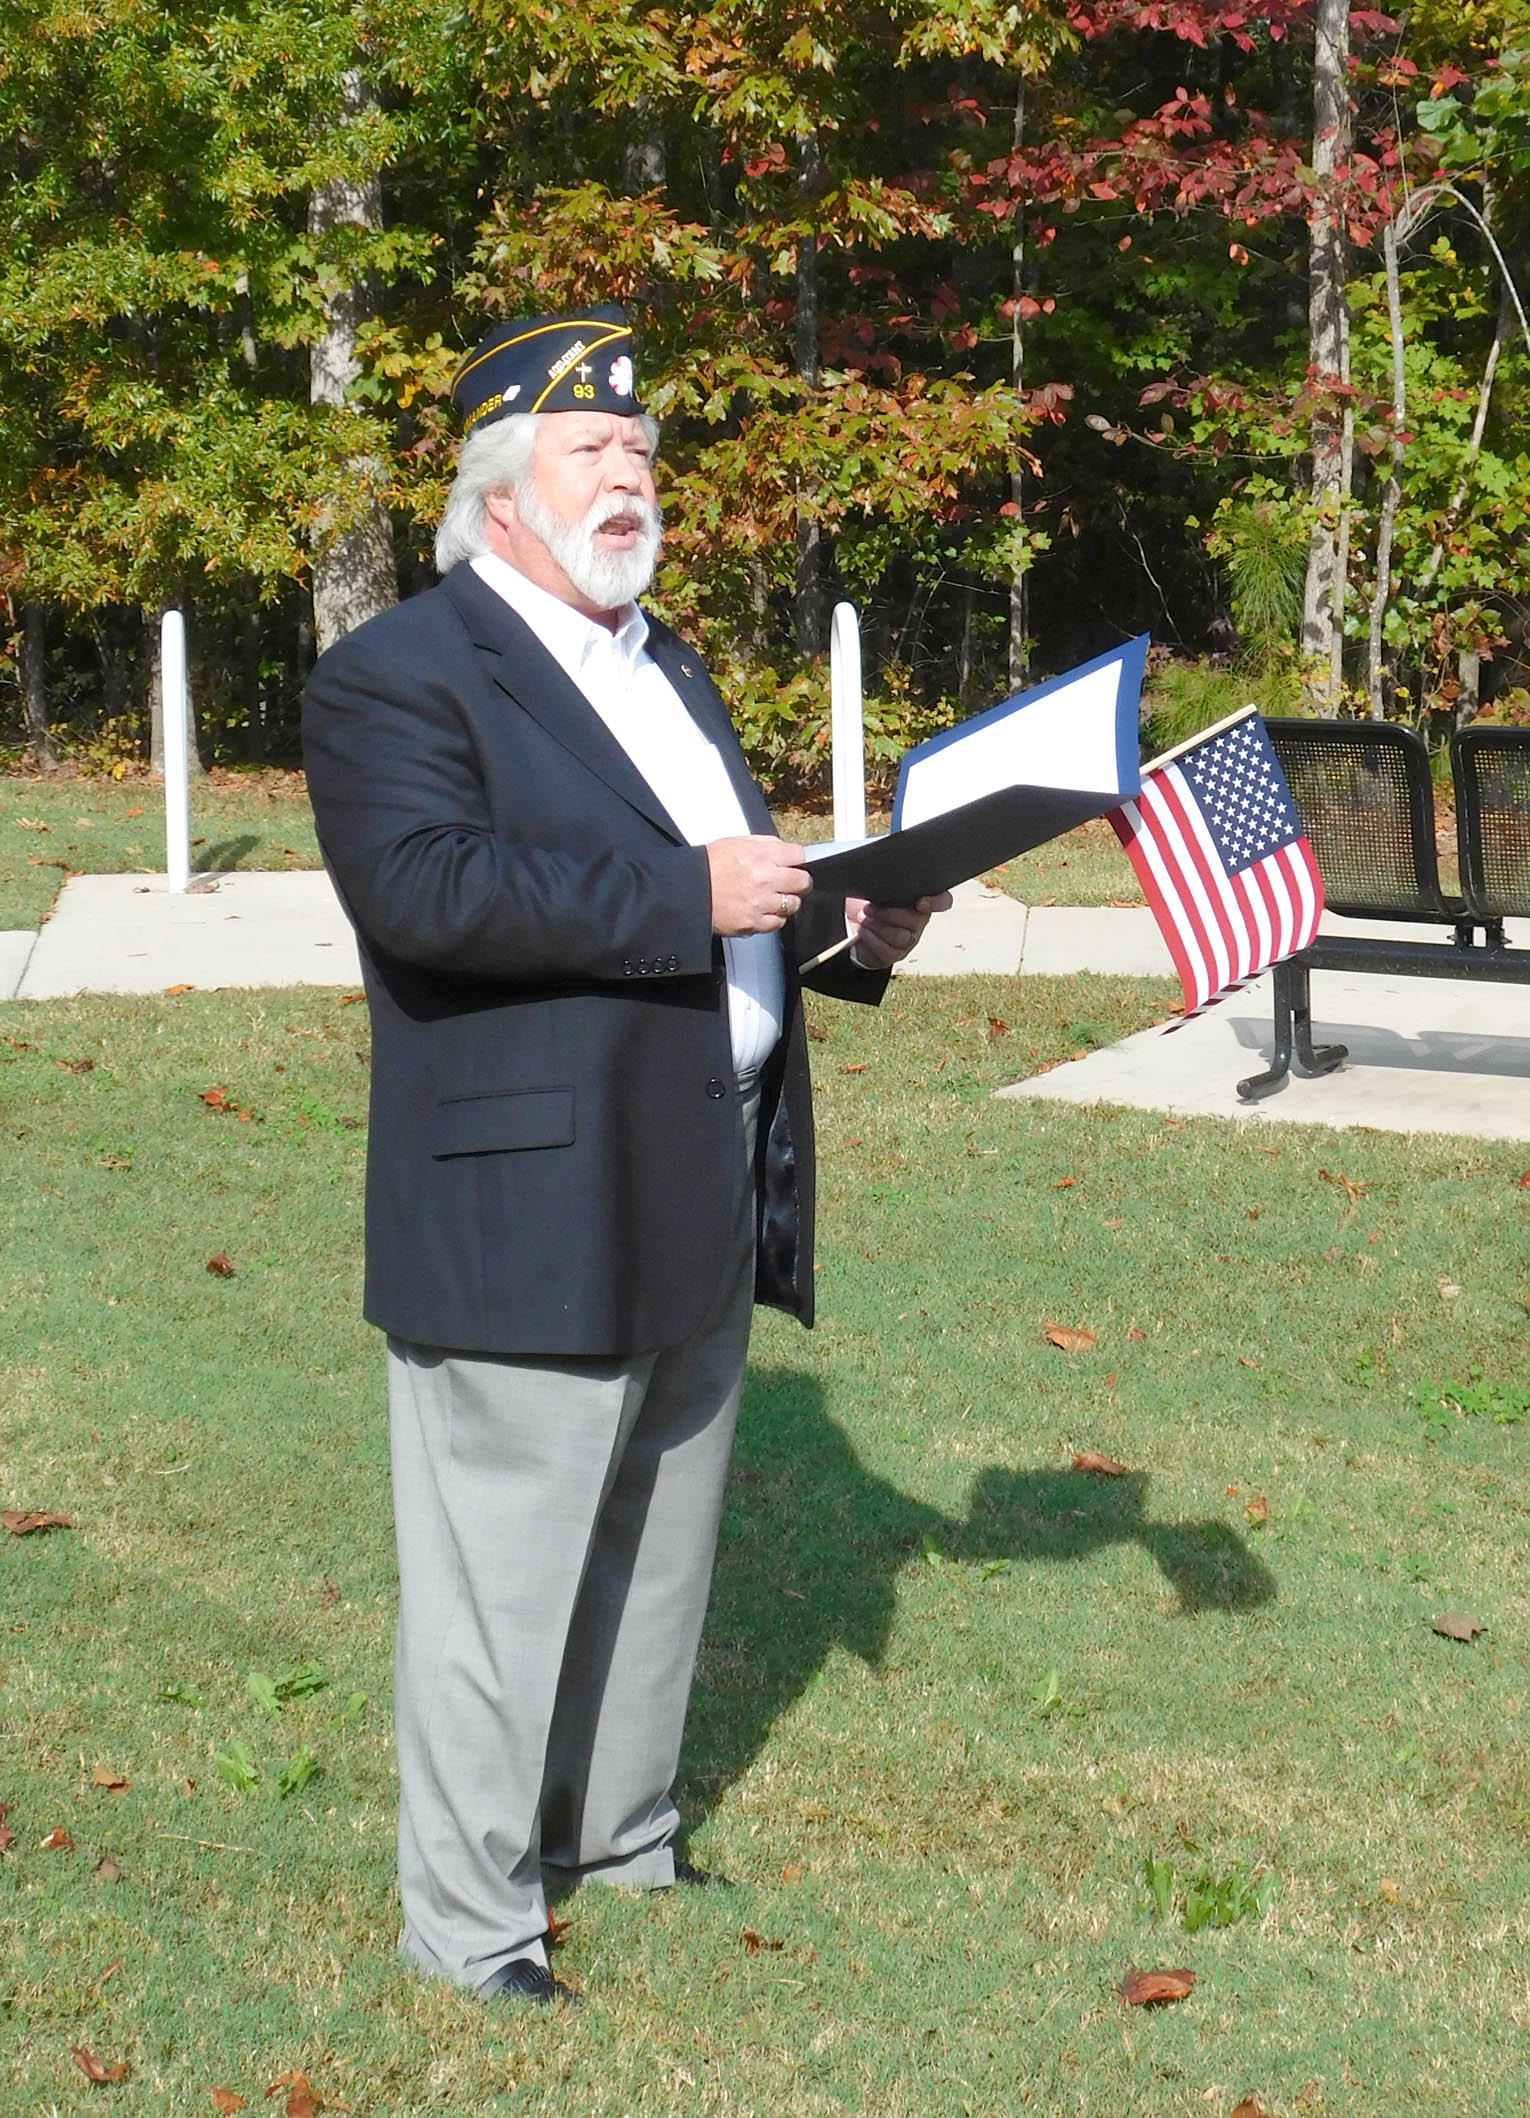 Click to enlarge,  Jeff Cathcart, a U.S. Navy veteran who is District Commander for The American Legion in N.C., will be guest speaker for the 2017 Veterans Day observance at the CCCC Siler City Center.